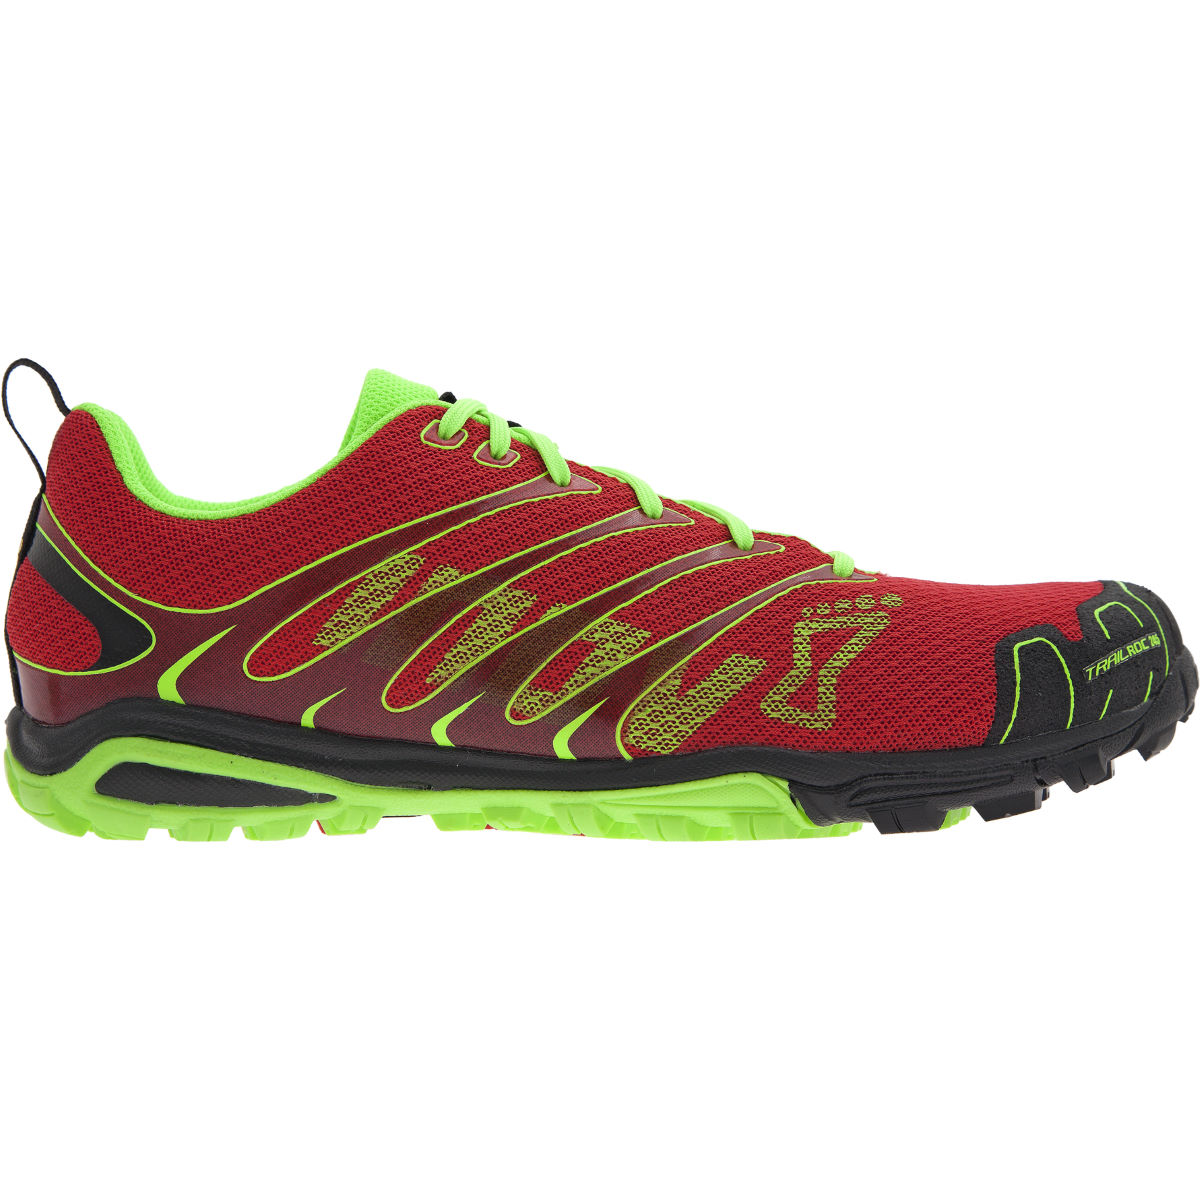 Inov-8 Trailroc 245 Shoes - AW14